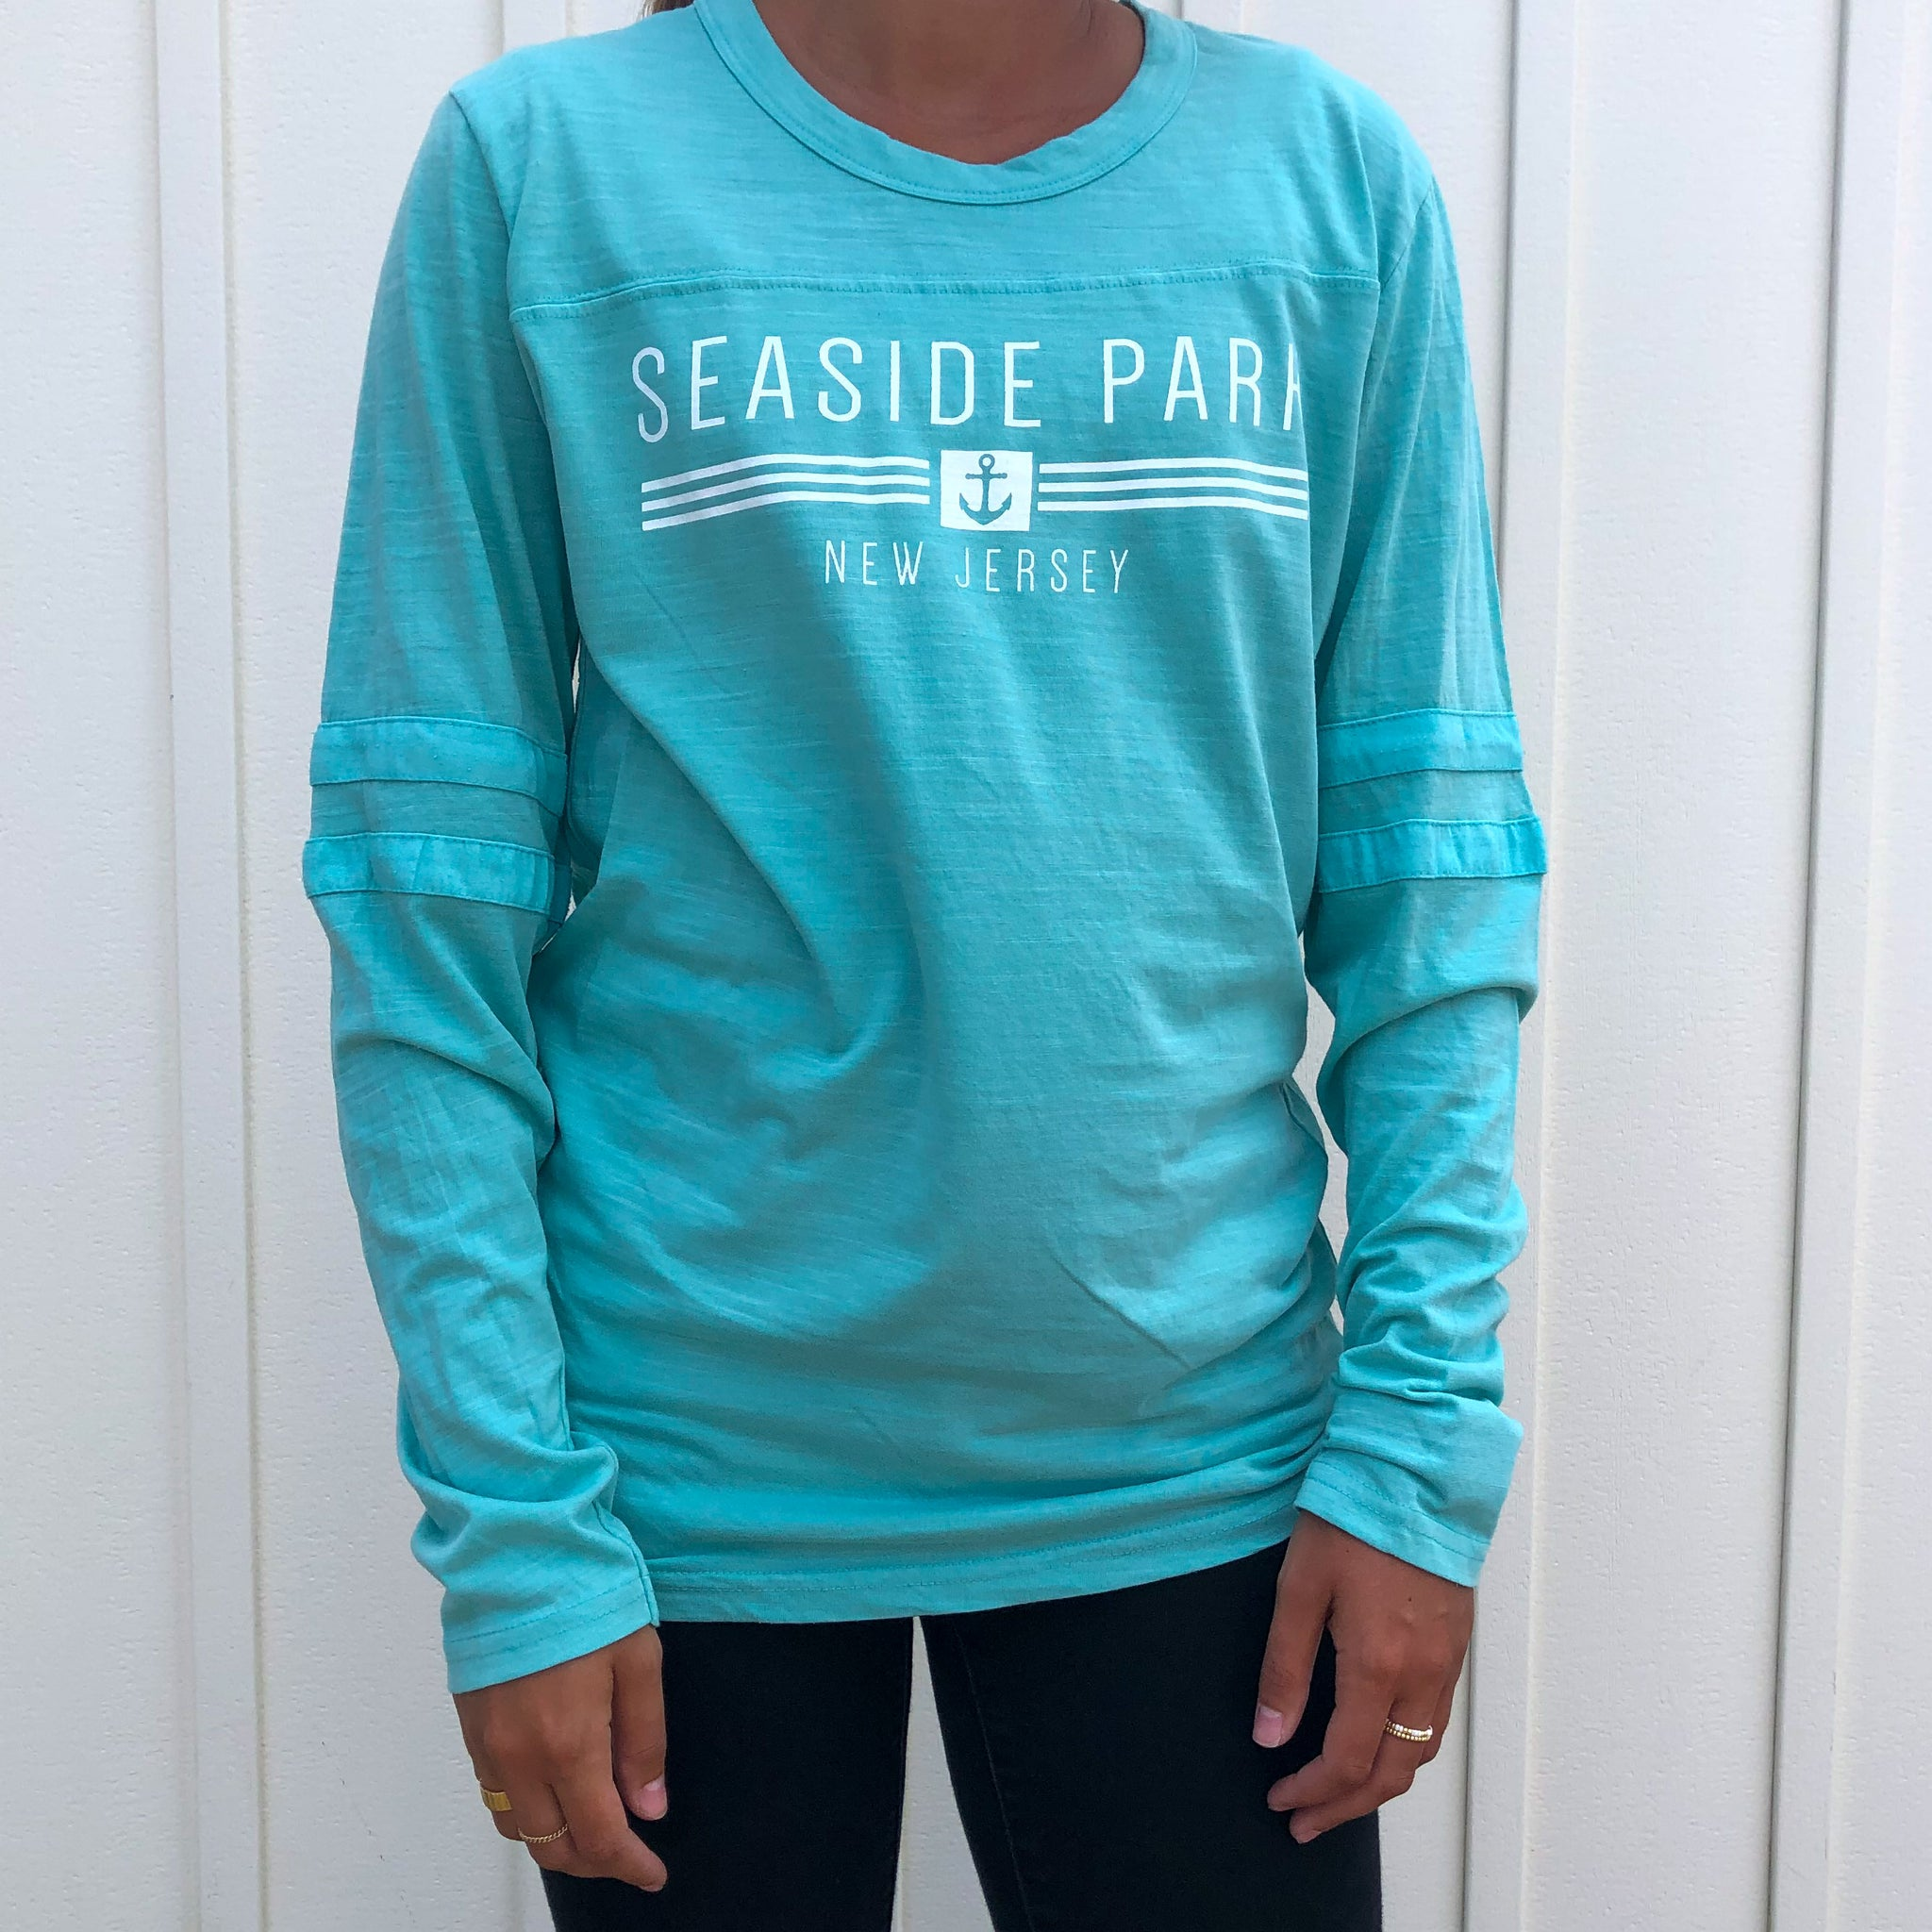 Seaside Park Light Weight Long Sleeve Shirt (Various Color Options)